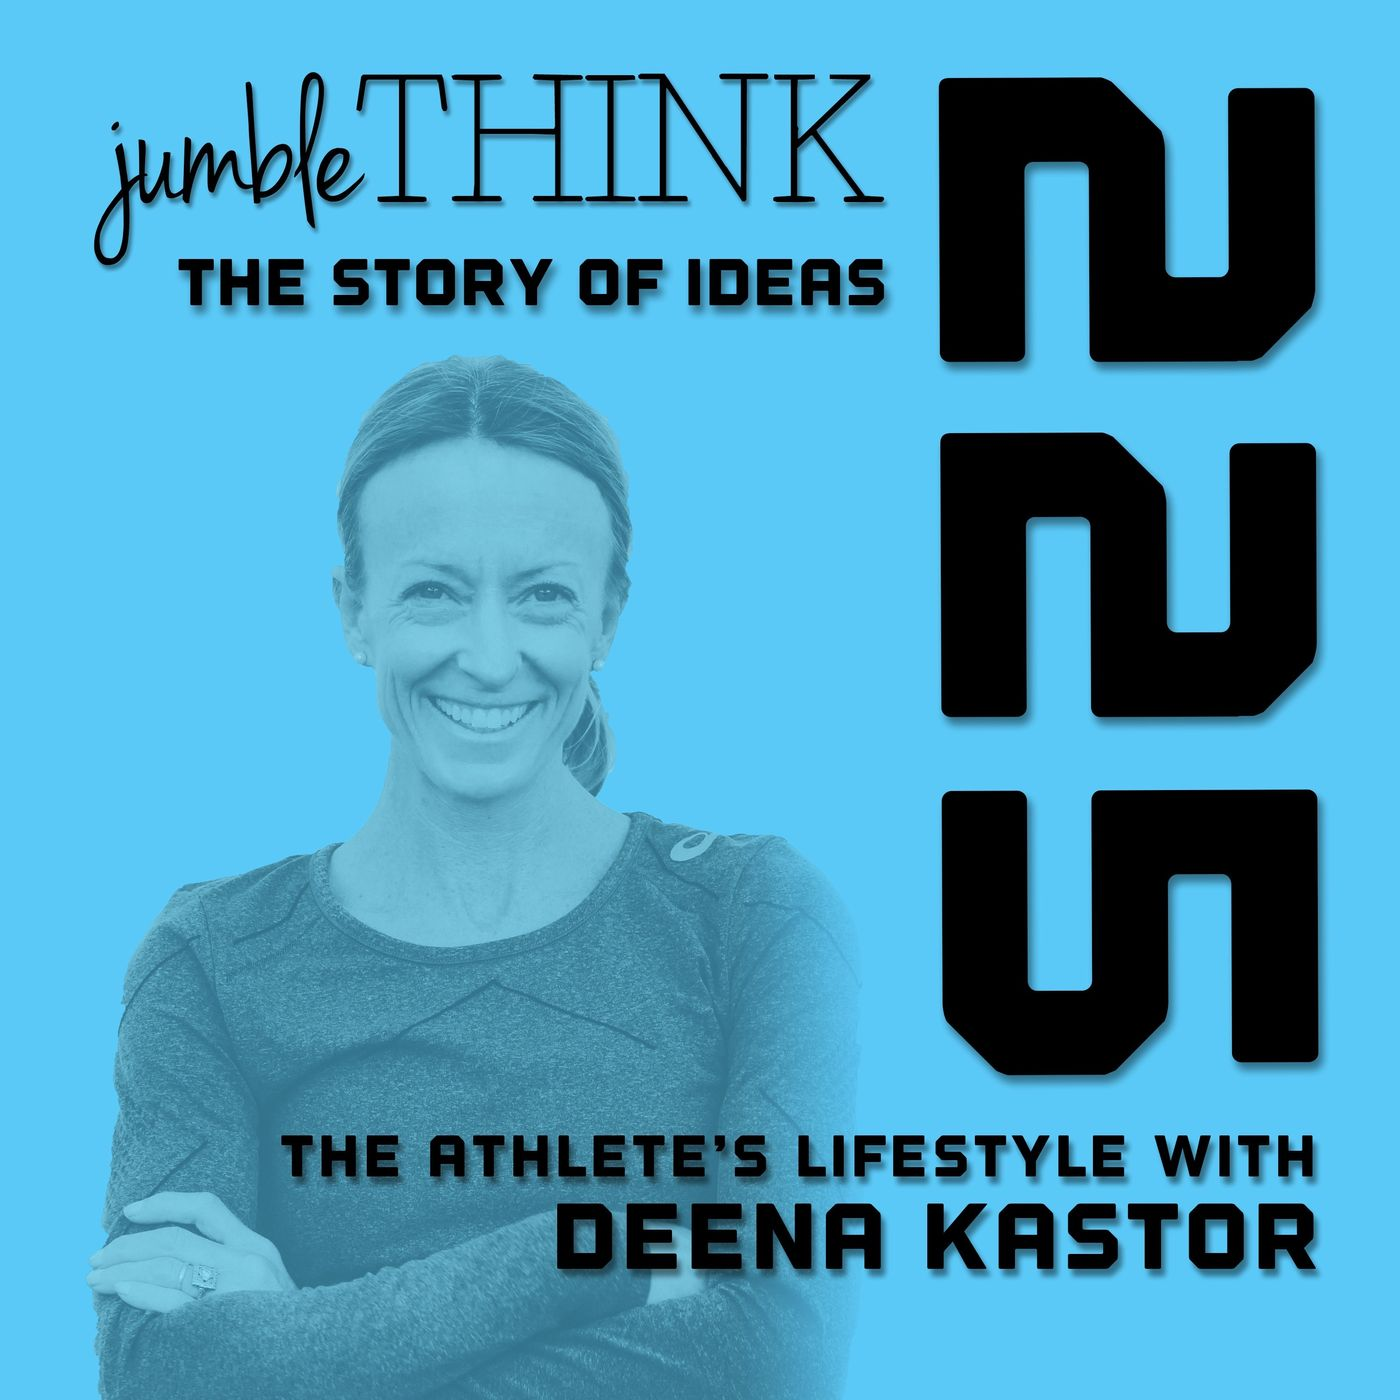 The Athlete's Lifestyle with Deena Kastor